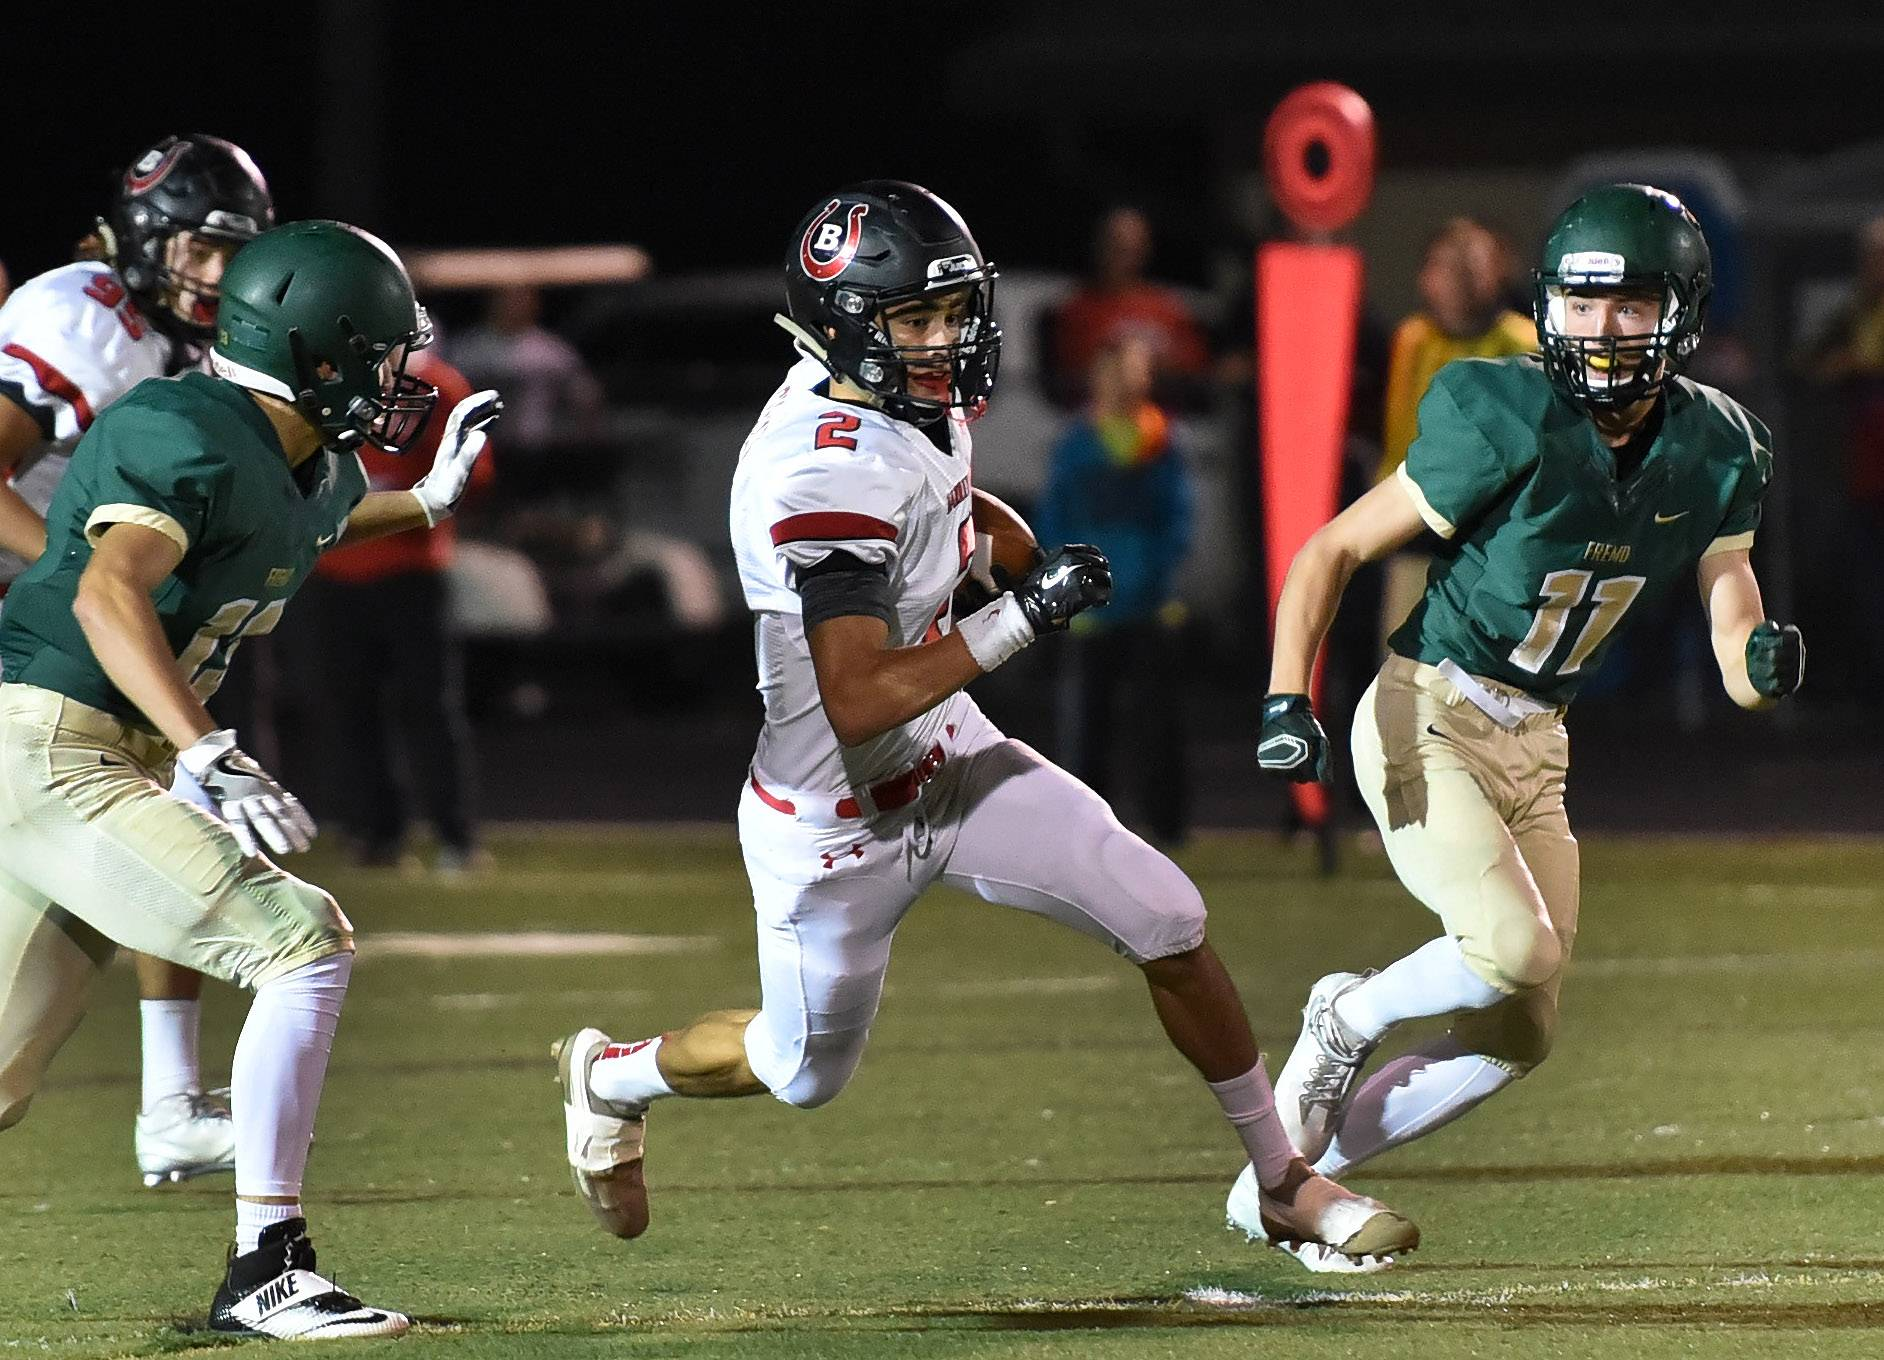 Images: Fremd falls to Barrington, 27-12 in football